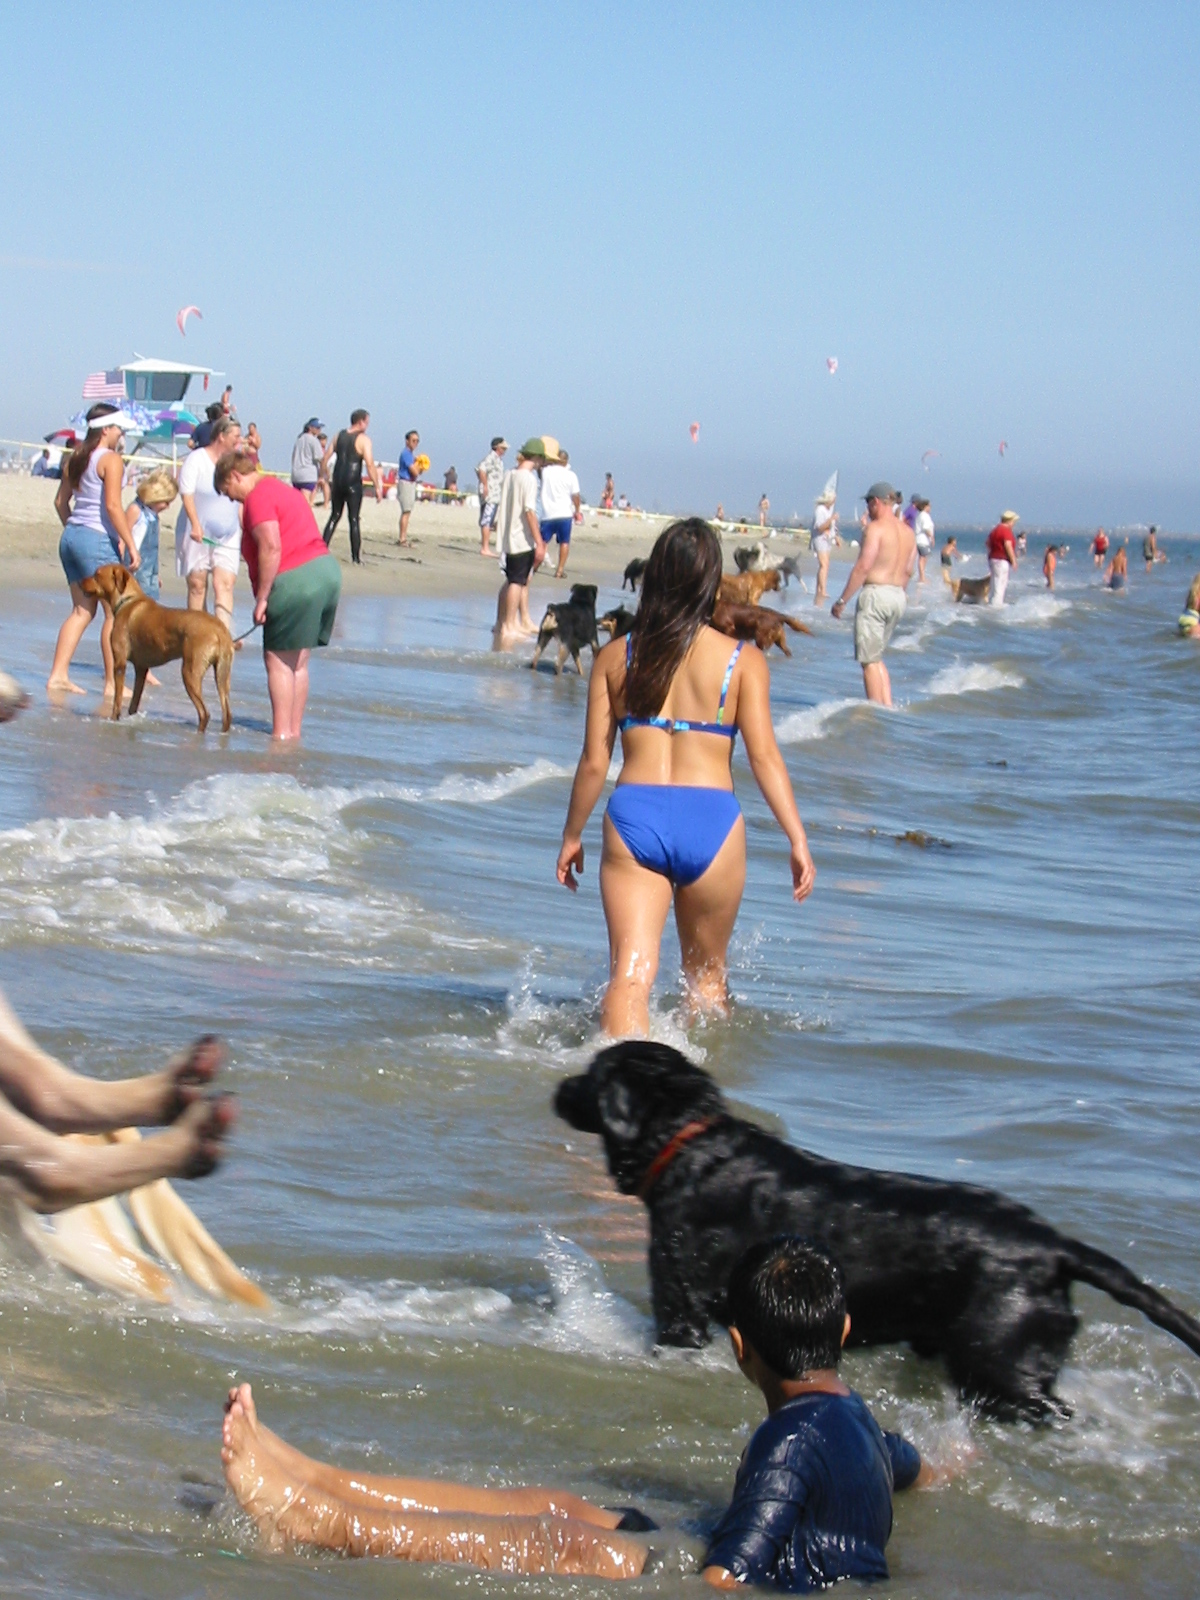 Description Girl in blue bikini at dog beach.jpg